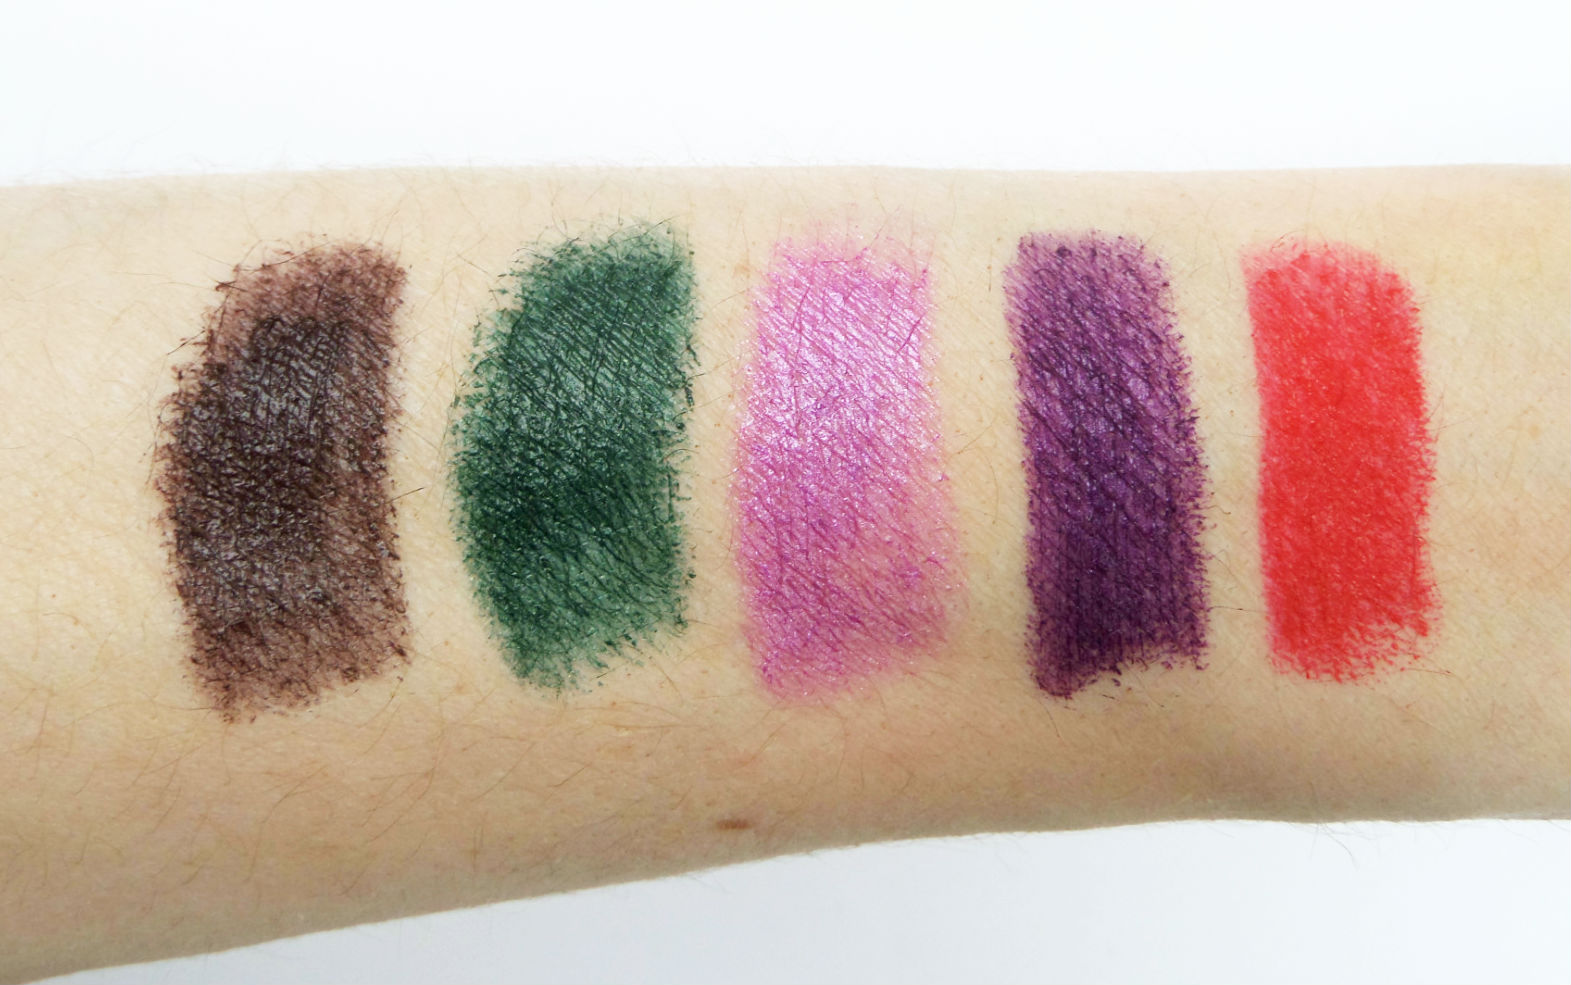 The Makeup Revolution Atomic Lipstick Collection Swatches